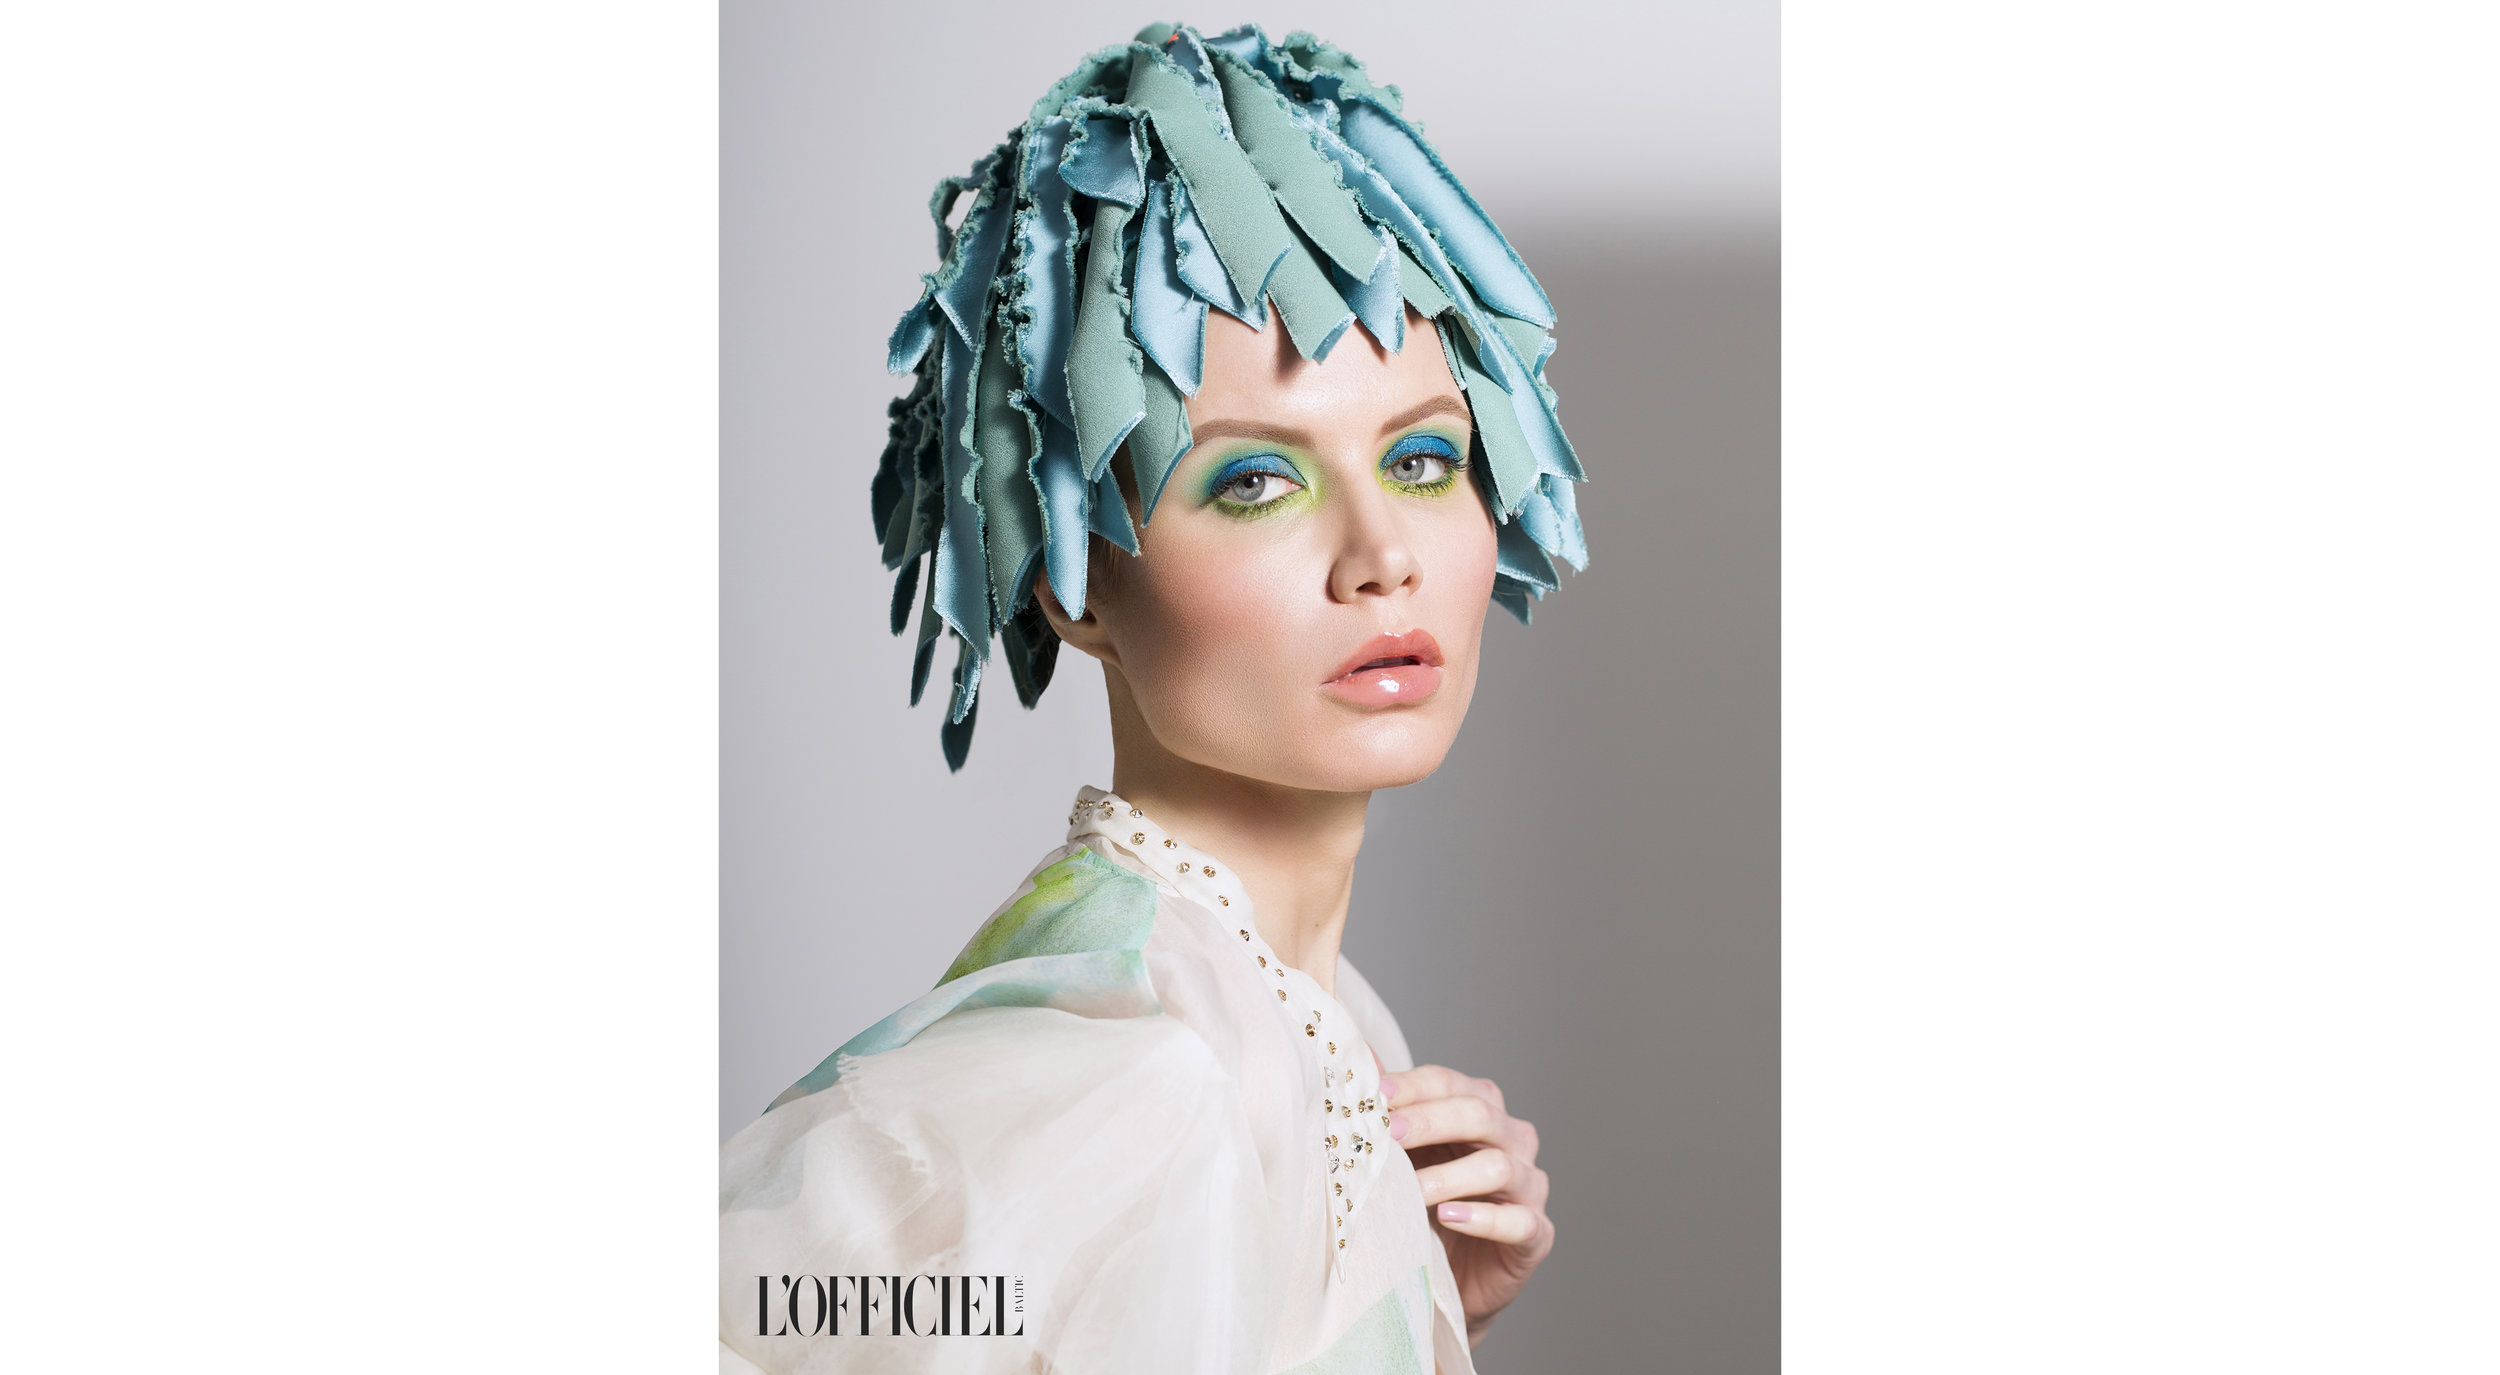 L'Officiel Baltics